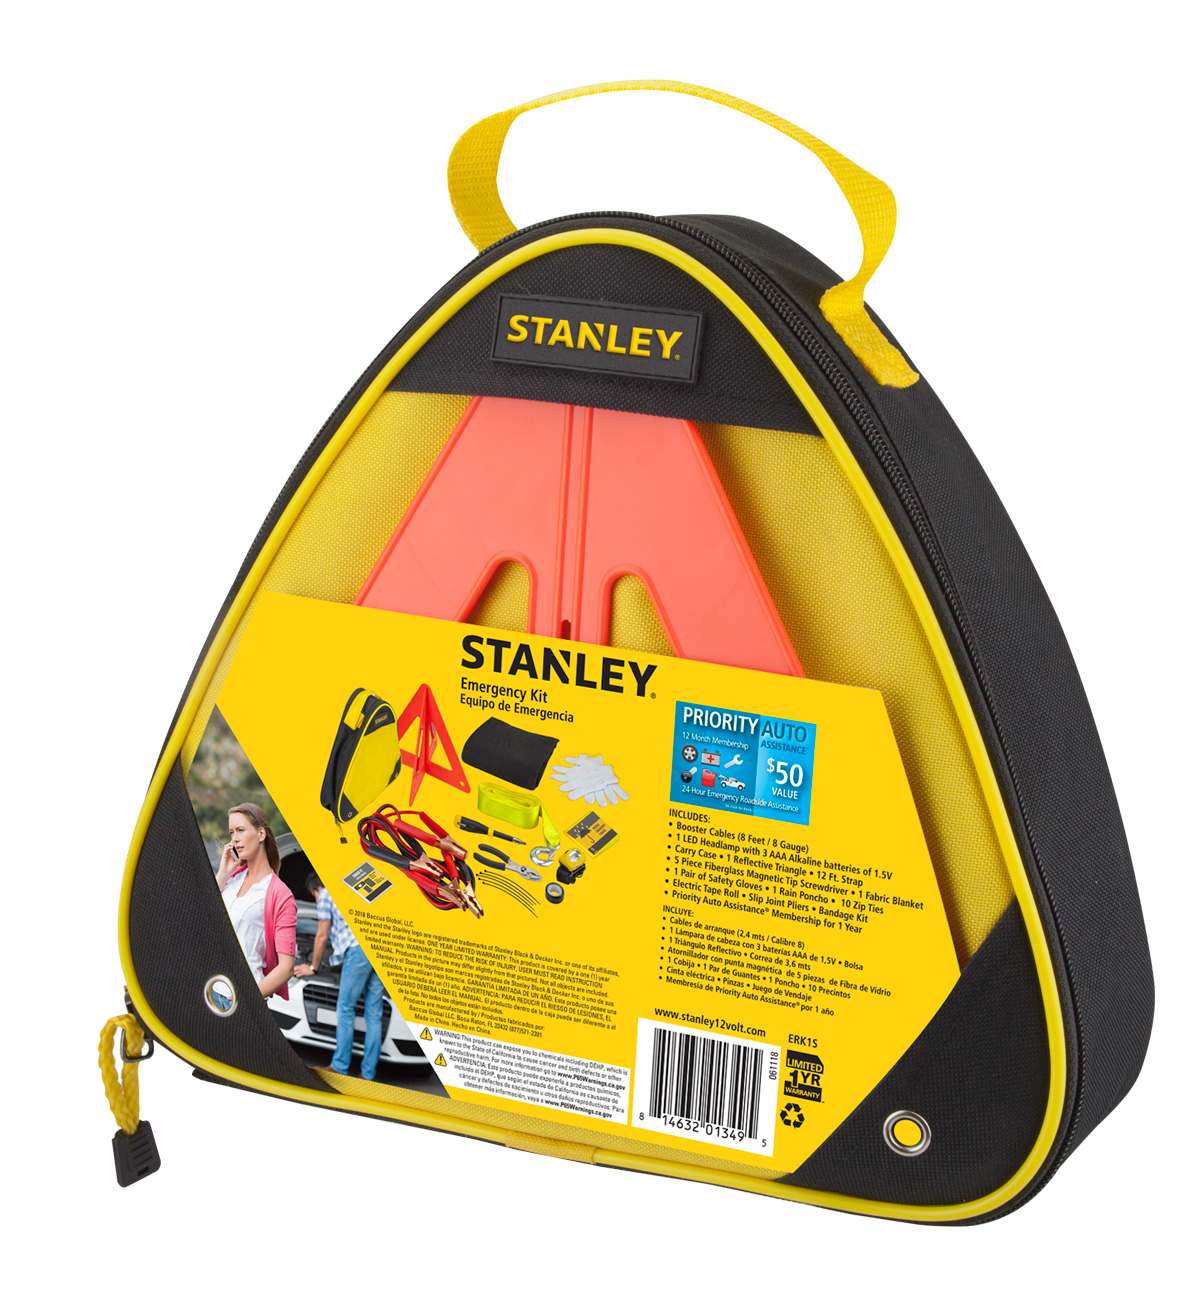 Stanley ERK1S Emergency Roadside kit with Booster Cables